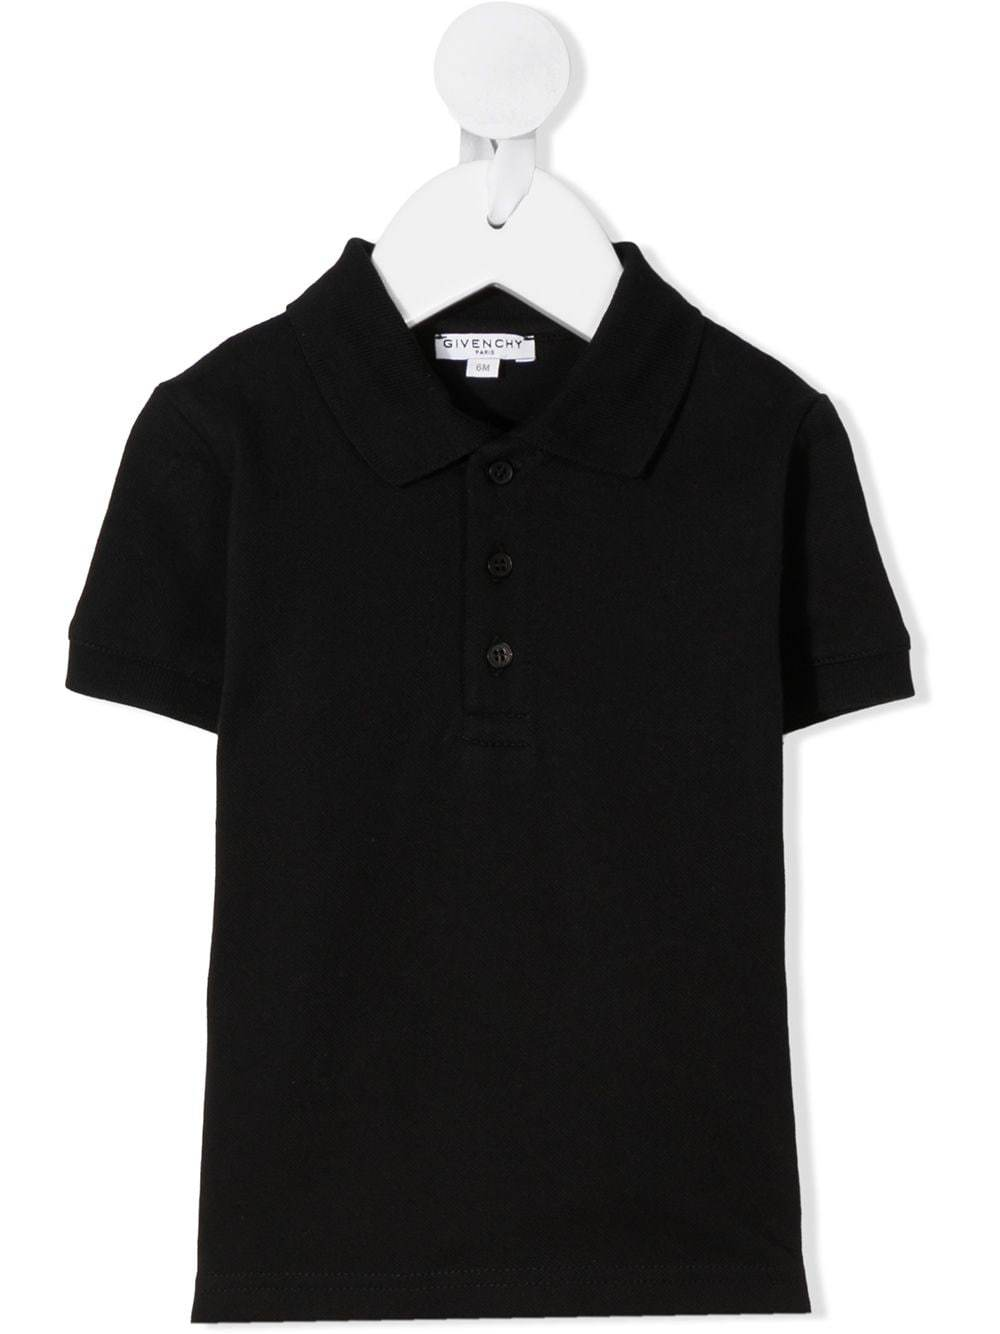 GIVENCHY KIDS Logo Polo Shirt Black